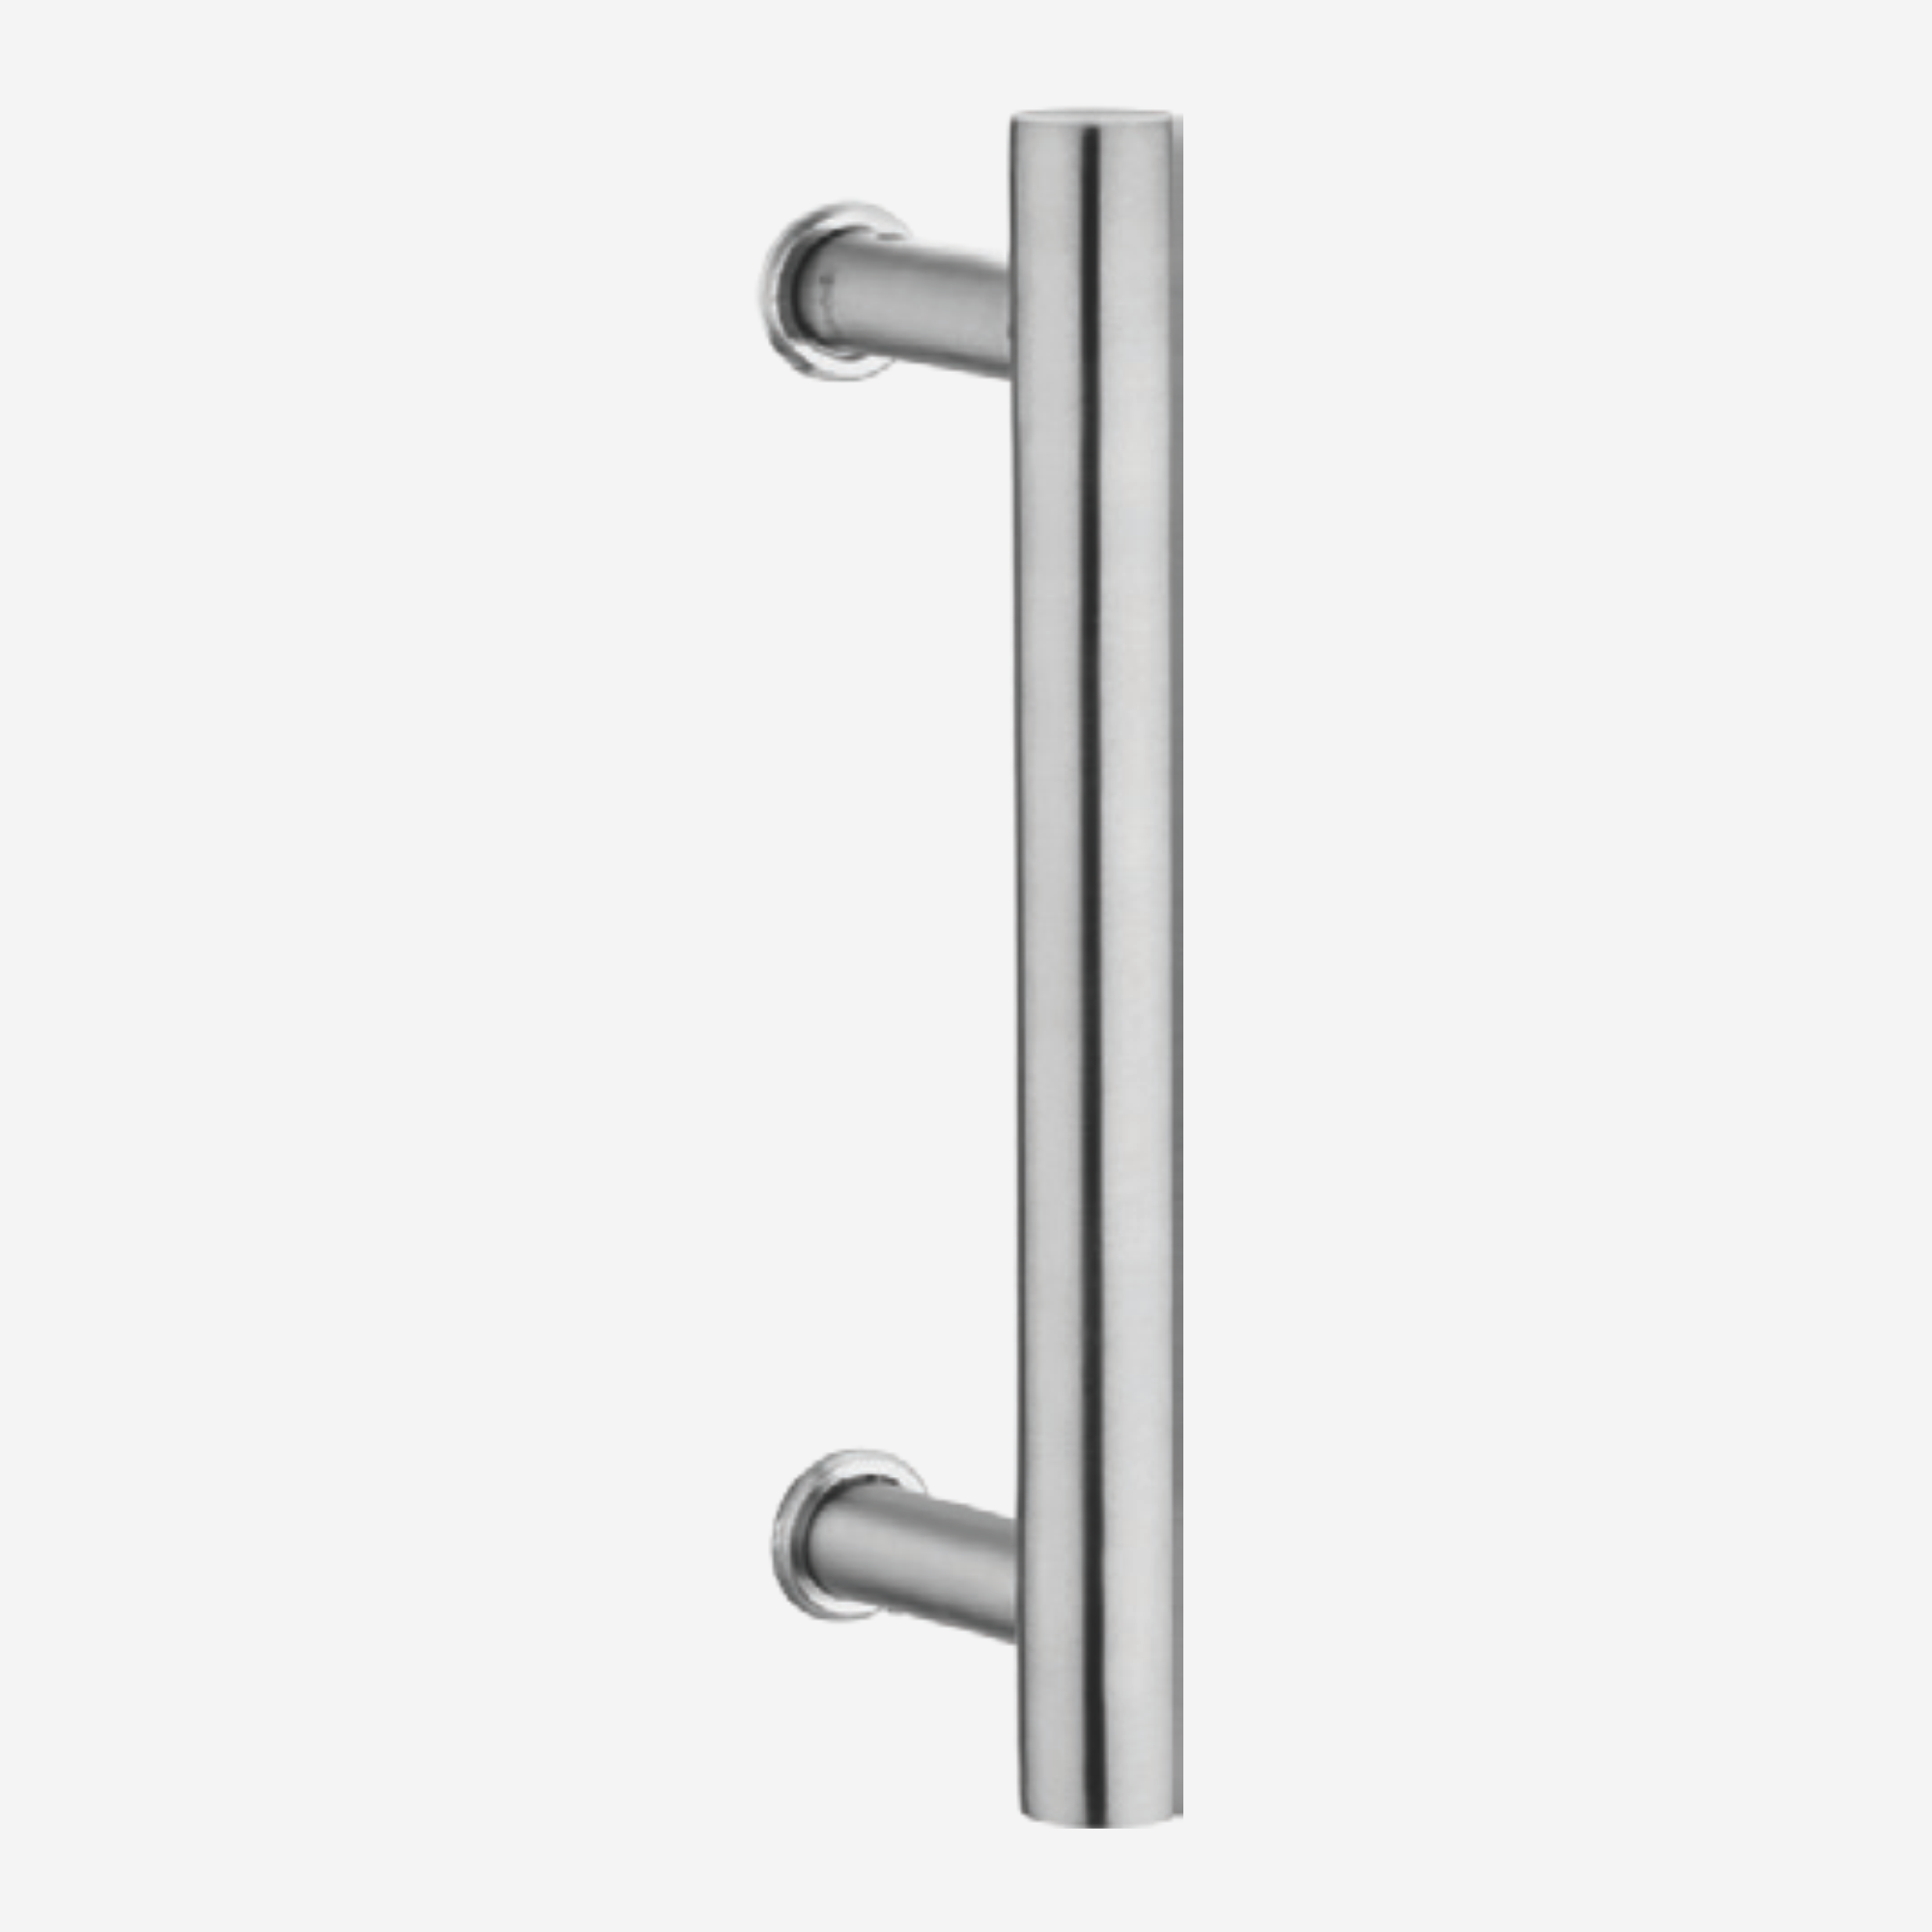 Dorset PULL HANDLE FOR GLASS DOOR 24inch - SH 24 P SS